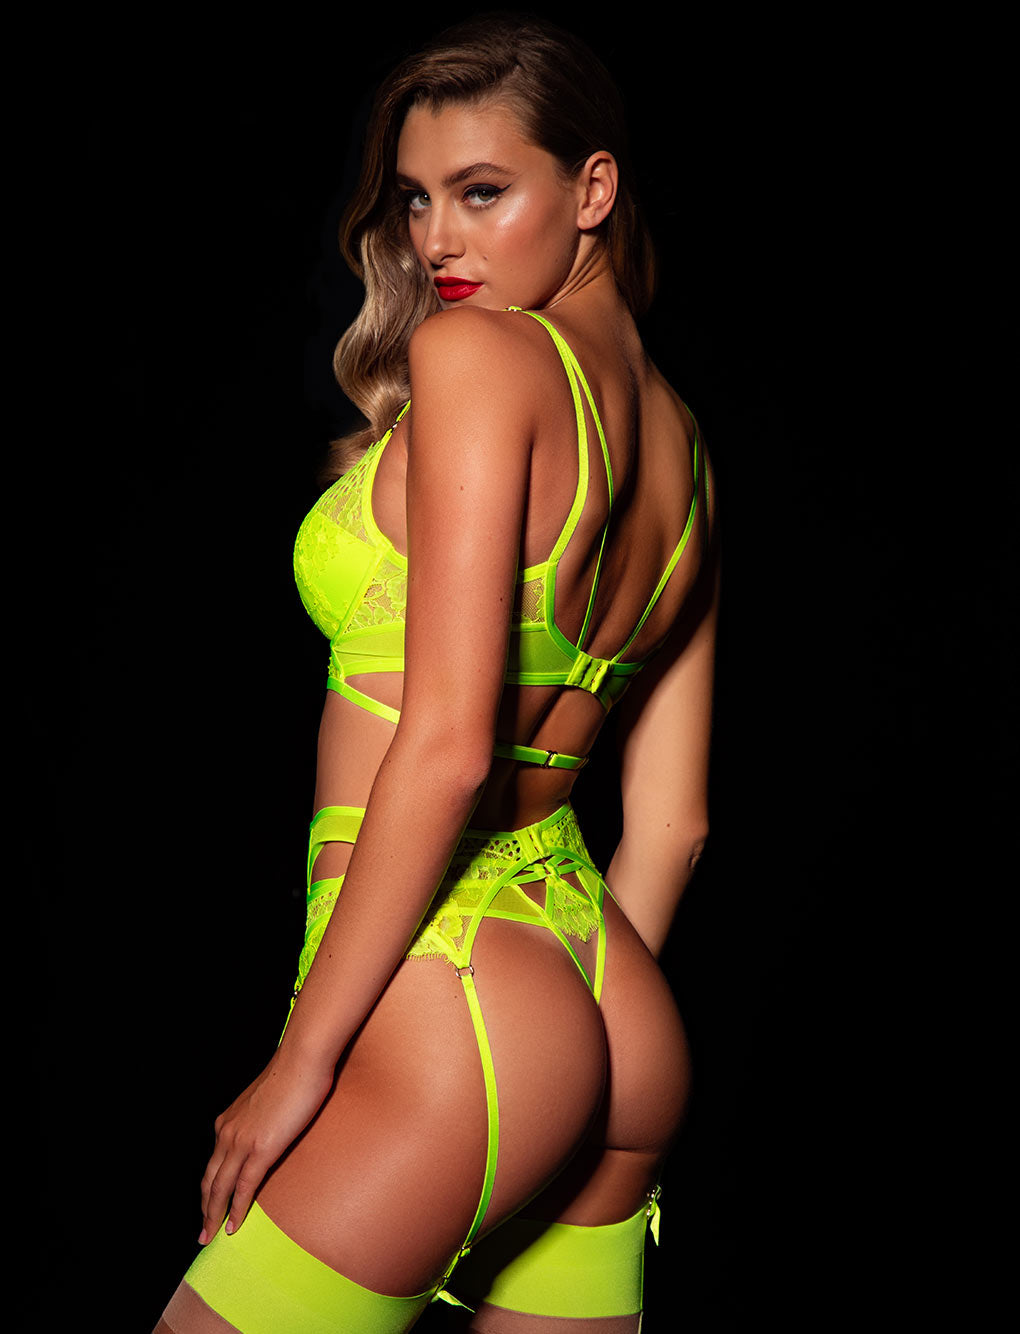 Vanessa Neon Yellow Garter Belt